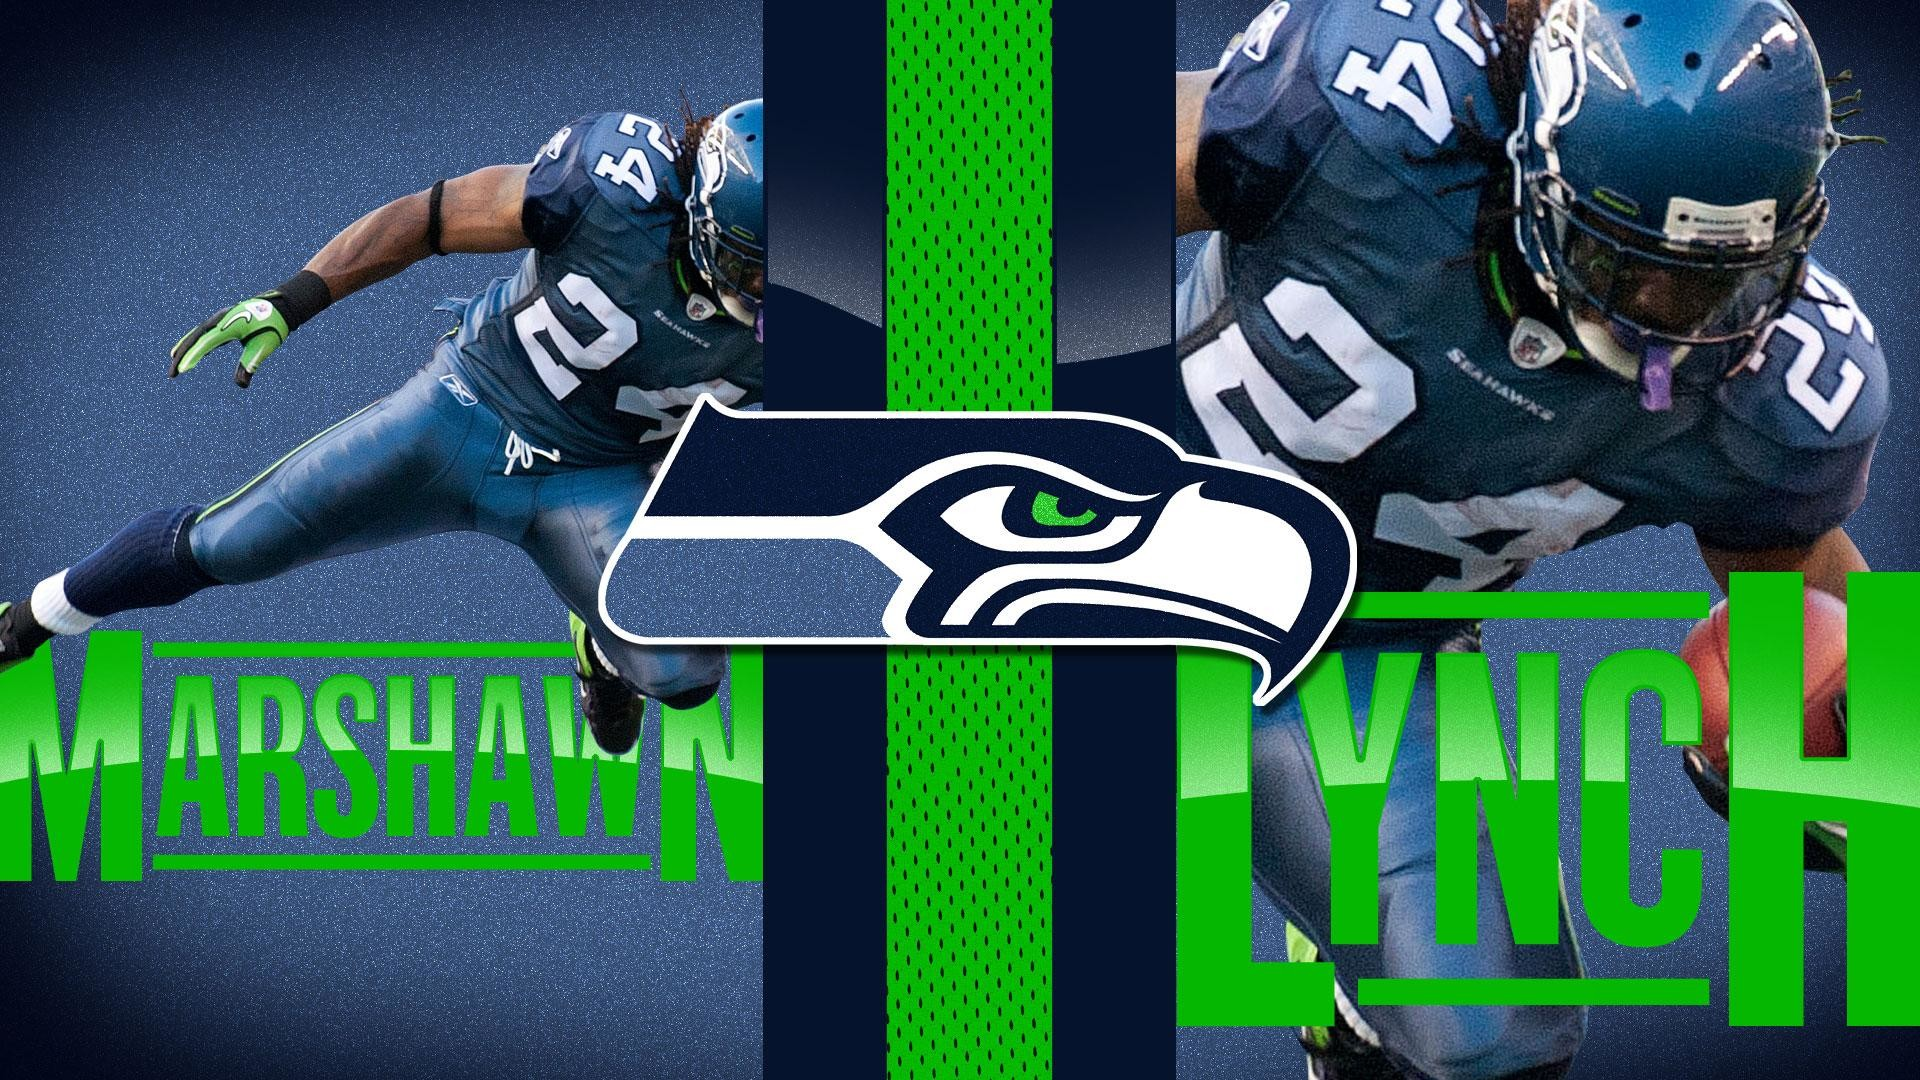 1920x1080 seattle seahawks wallpaper hd #141474